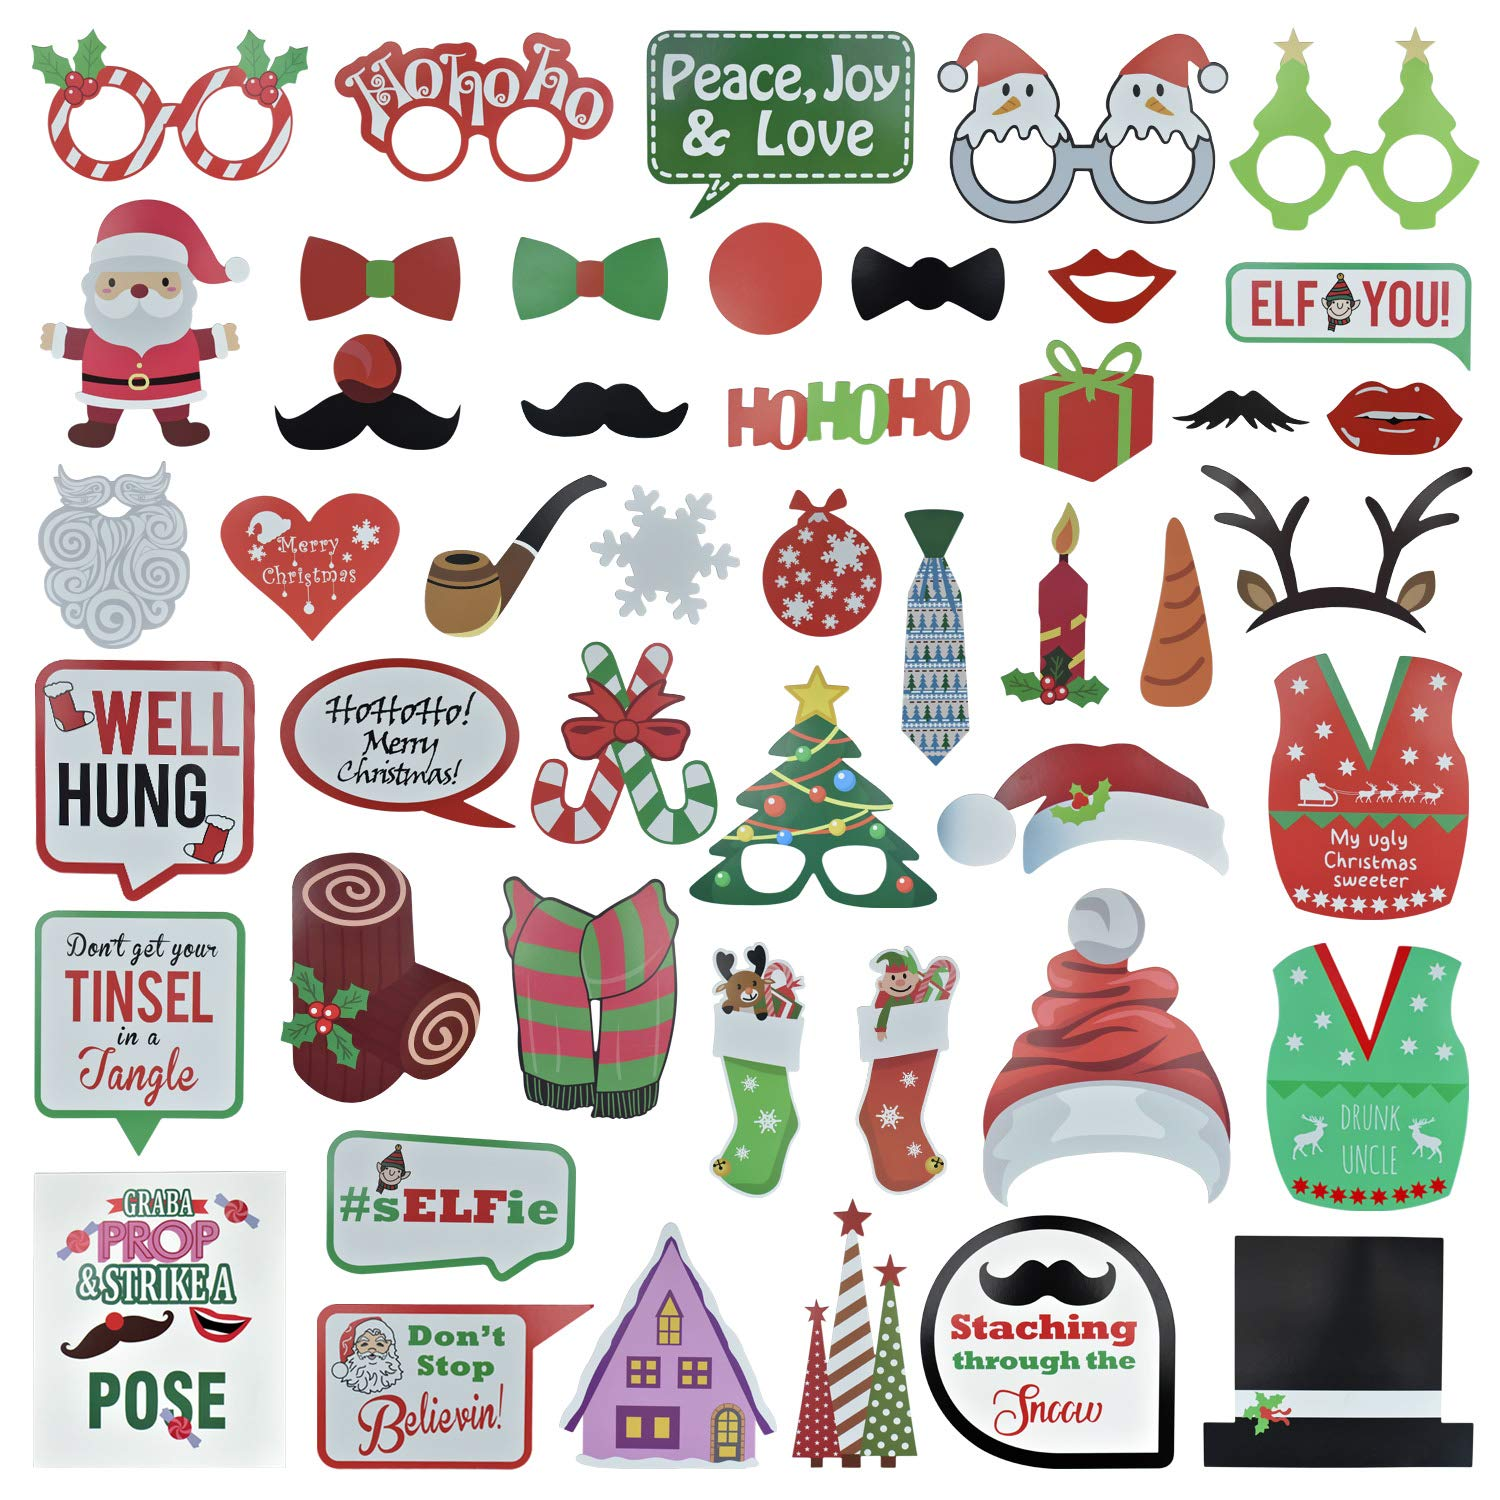 Selfie Prop for New Year 2019,Santa Hat Party Masks Photo Booth Props Mustache On A Stick 62Pcs Christmas Photo Booth Props Kit for Party Supplies and Christmas Decorations